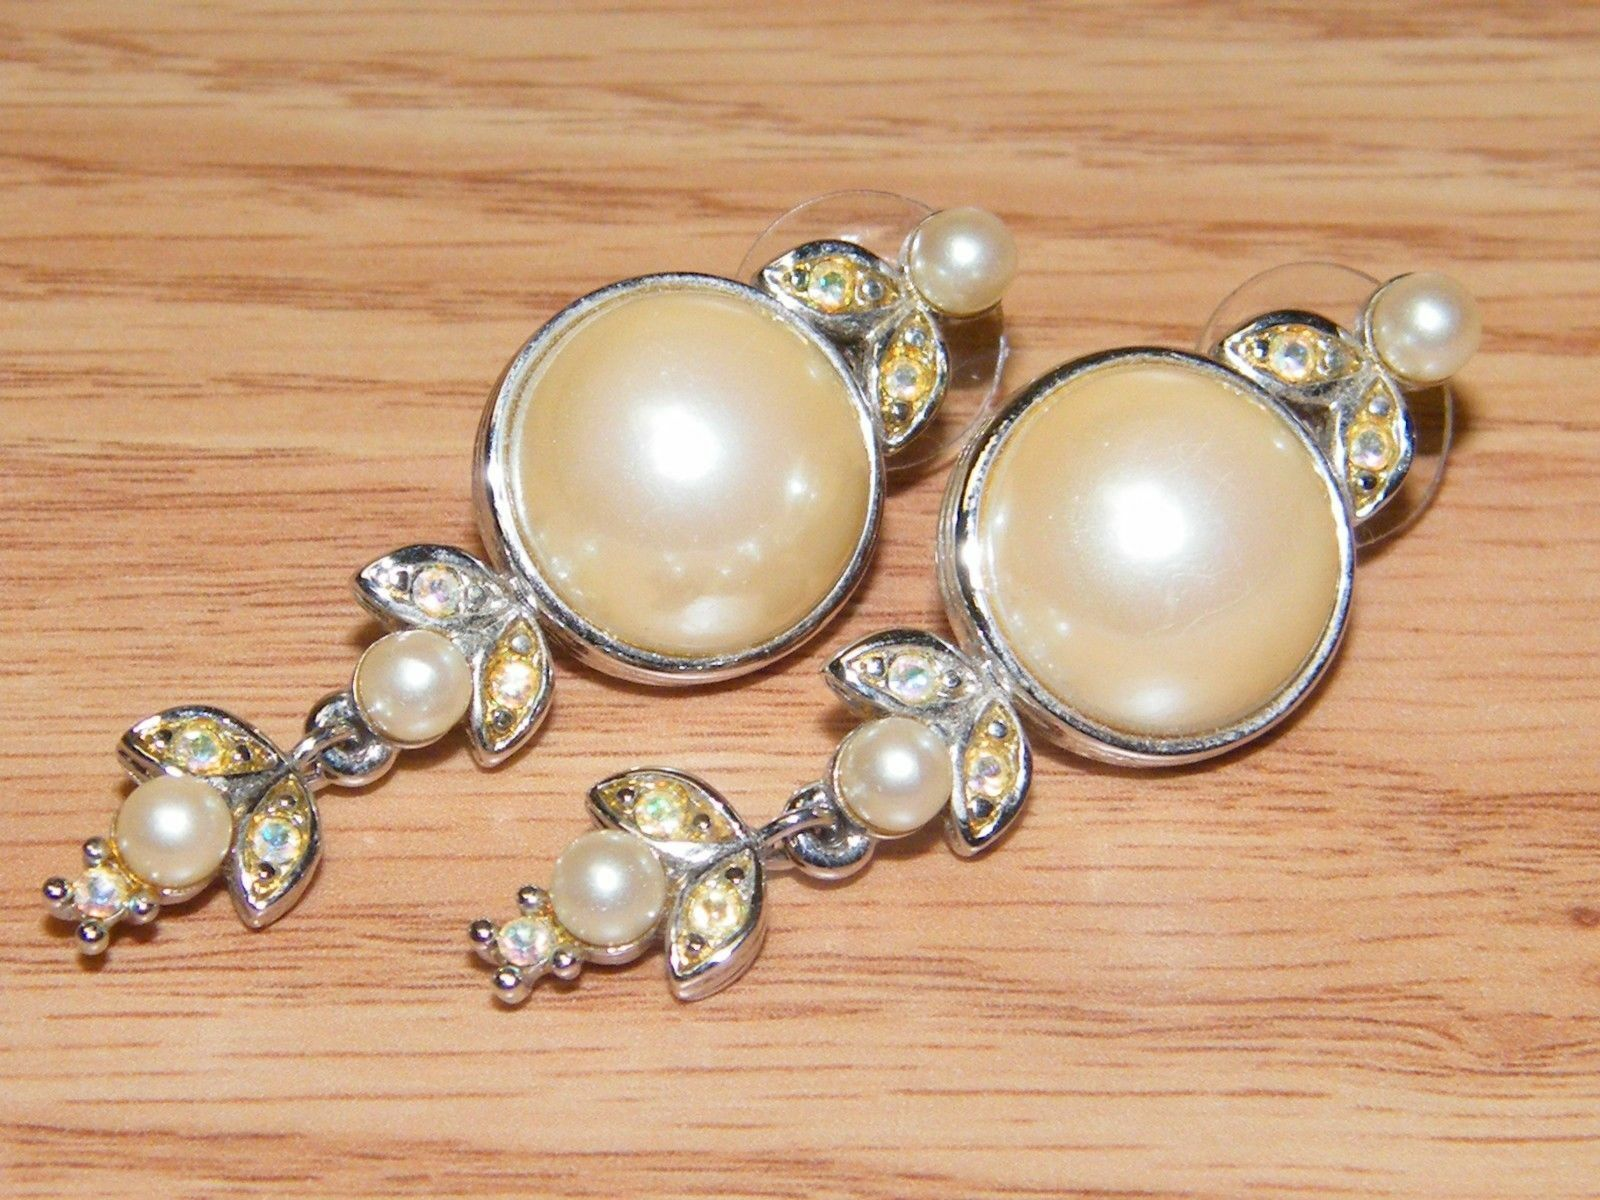 Genuine Richelieu Faux Pearls Collectible Fashion Jewelry Earrings READ